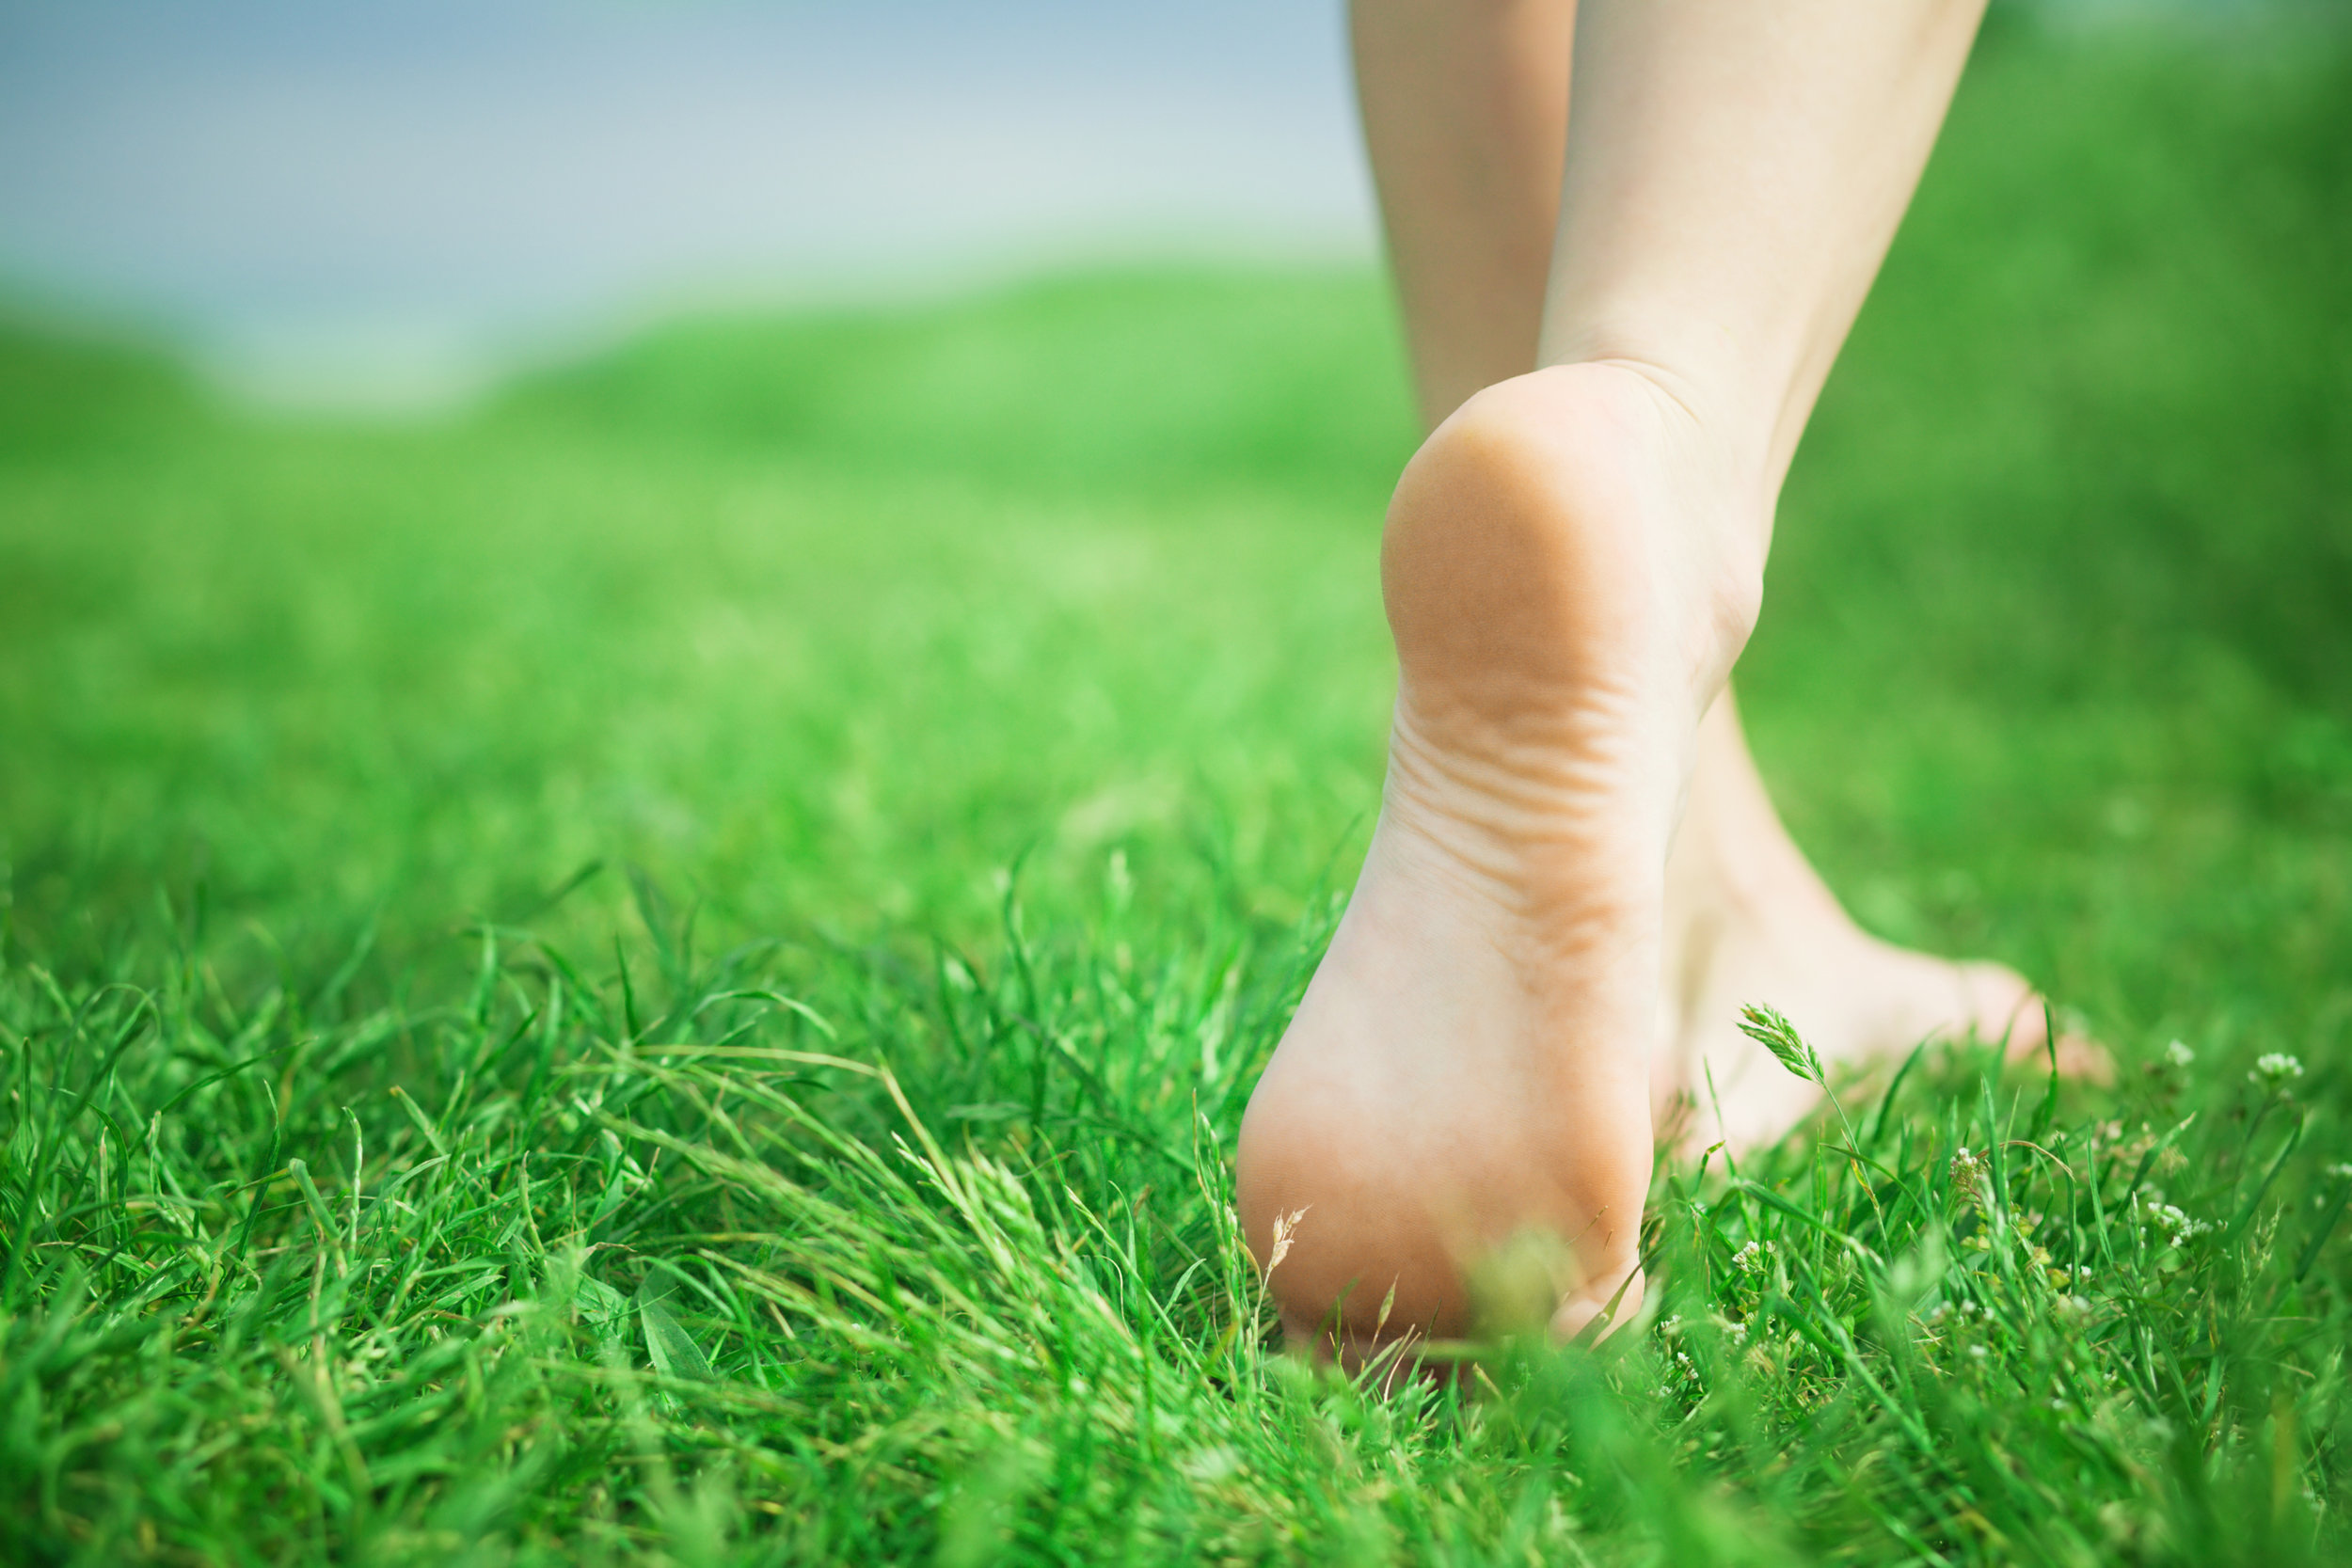 athlete's foot treatment by foot doctor burton katzen in temple hills and clinton maryland